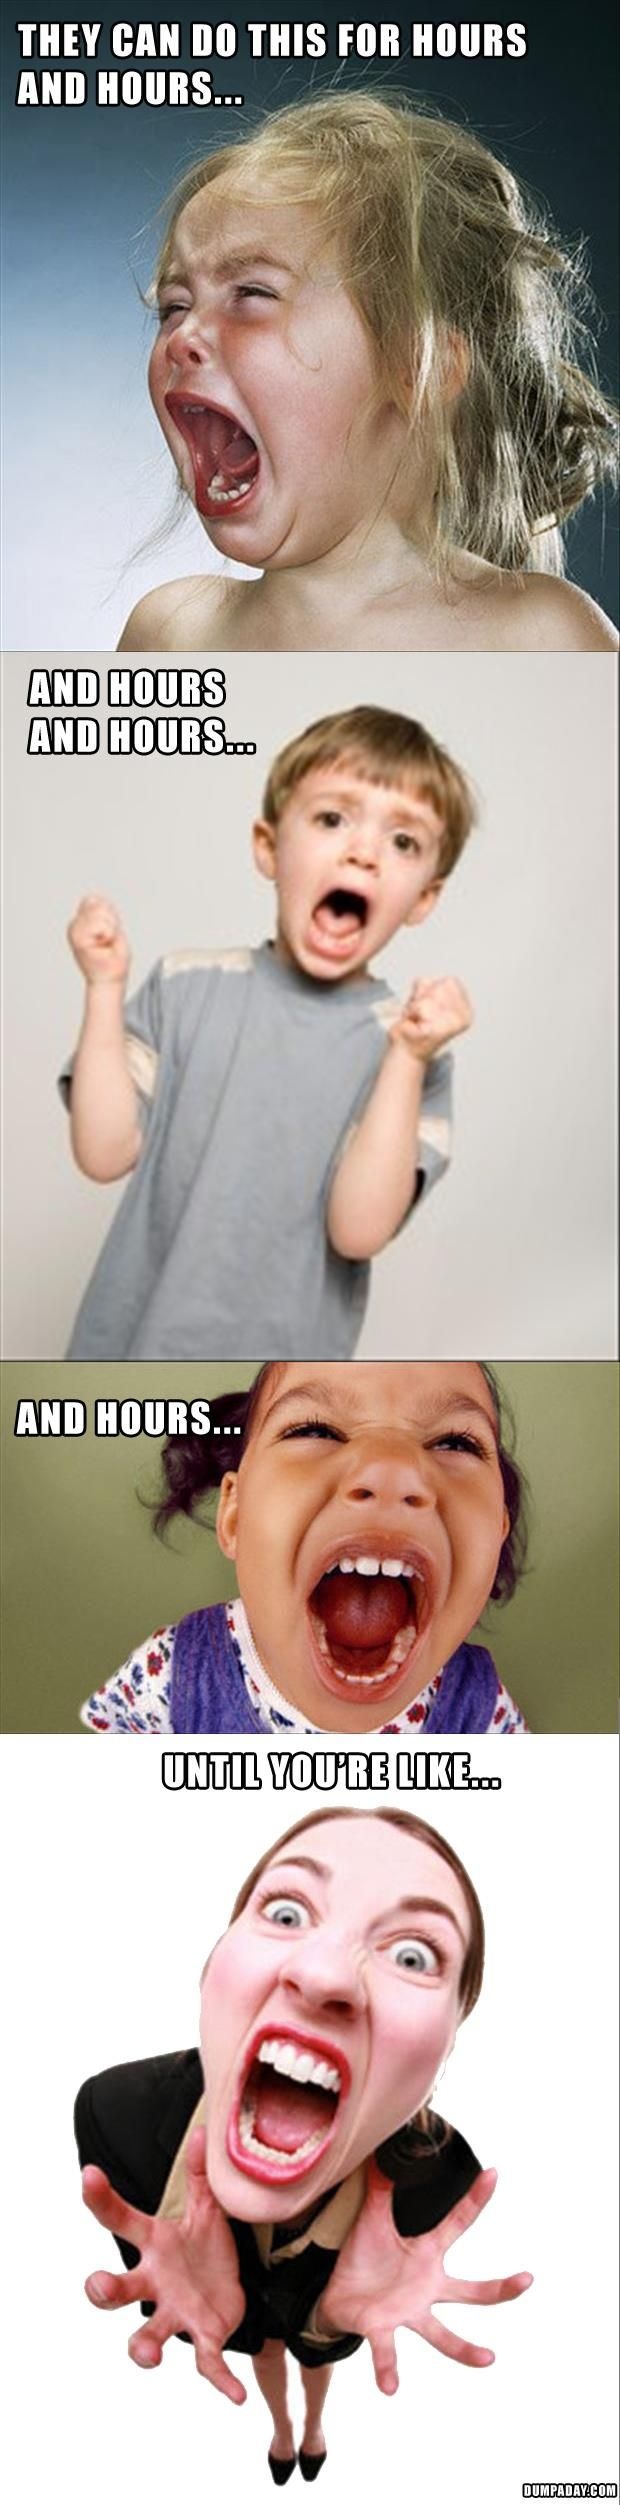 22 Reasons Kids Suck. This sums up my life as I'm currently wide awake in the middle of the night with a baby who won't sleep. Ever. At all.